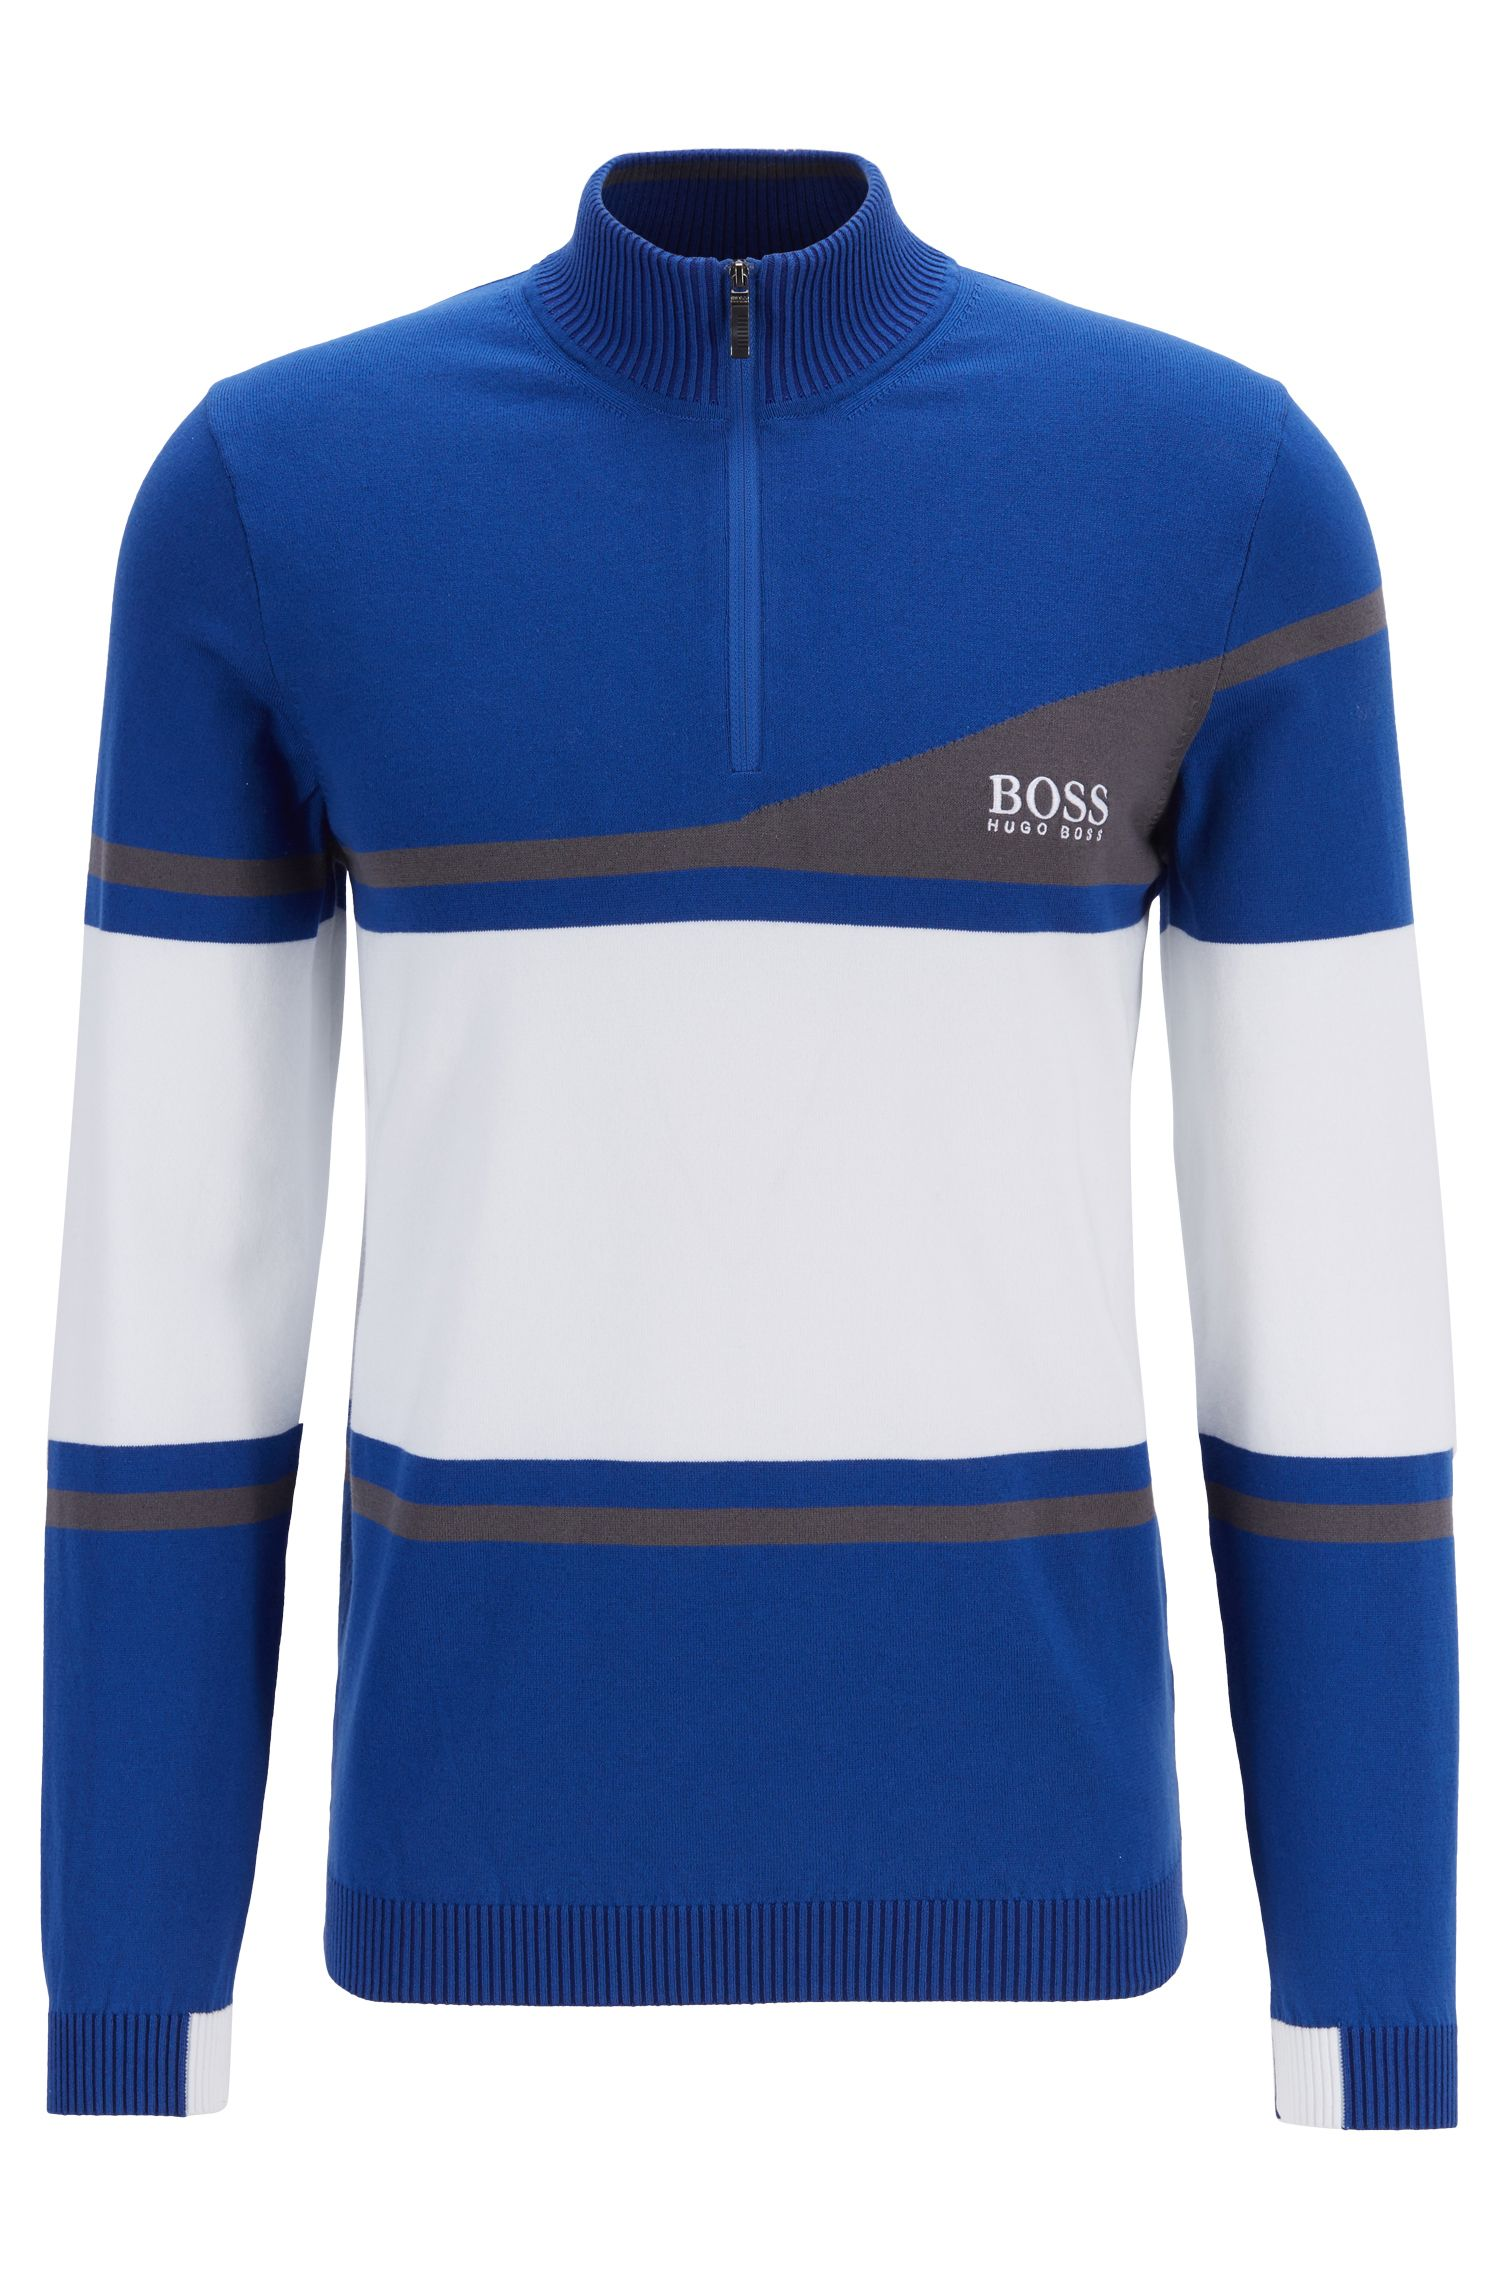 Martin Kaymer Pullover in Colour-Block-Optik mit wasserabweisendem Finish, Blau